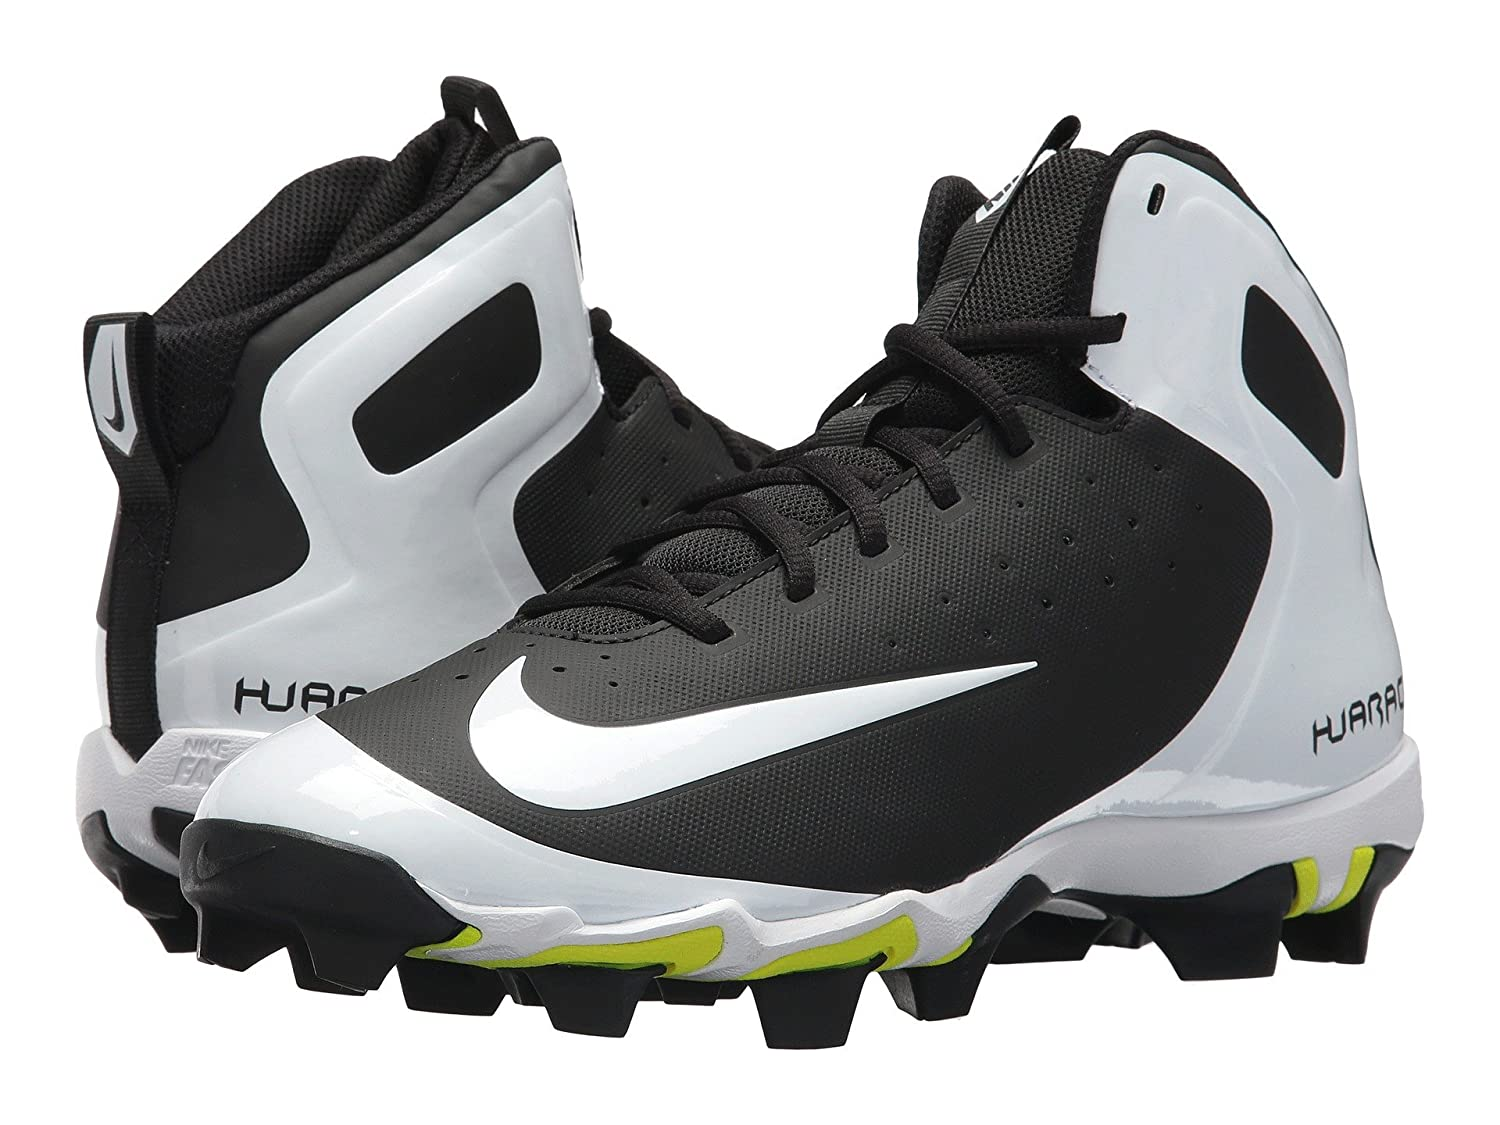 (ナイキ) NIKE メンズ野球ベースボールシューズ靴 Alpha Huarache Keystone Mid Black/White/White/Wolf Grey 8 (26cm) D Medium B078Q1VS4T